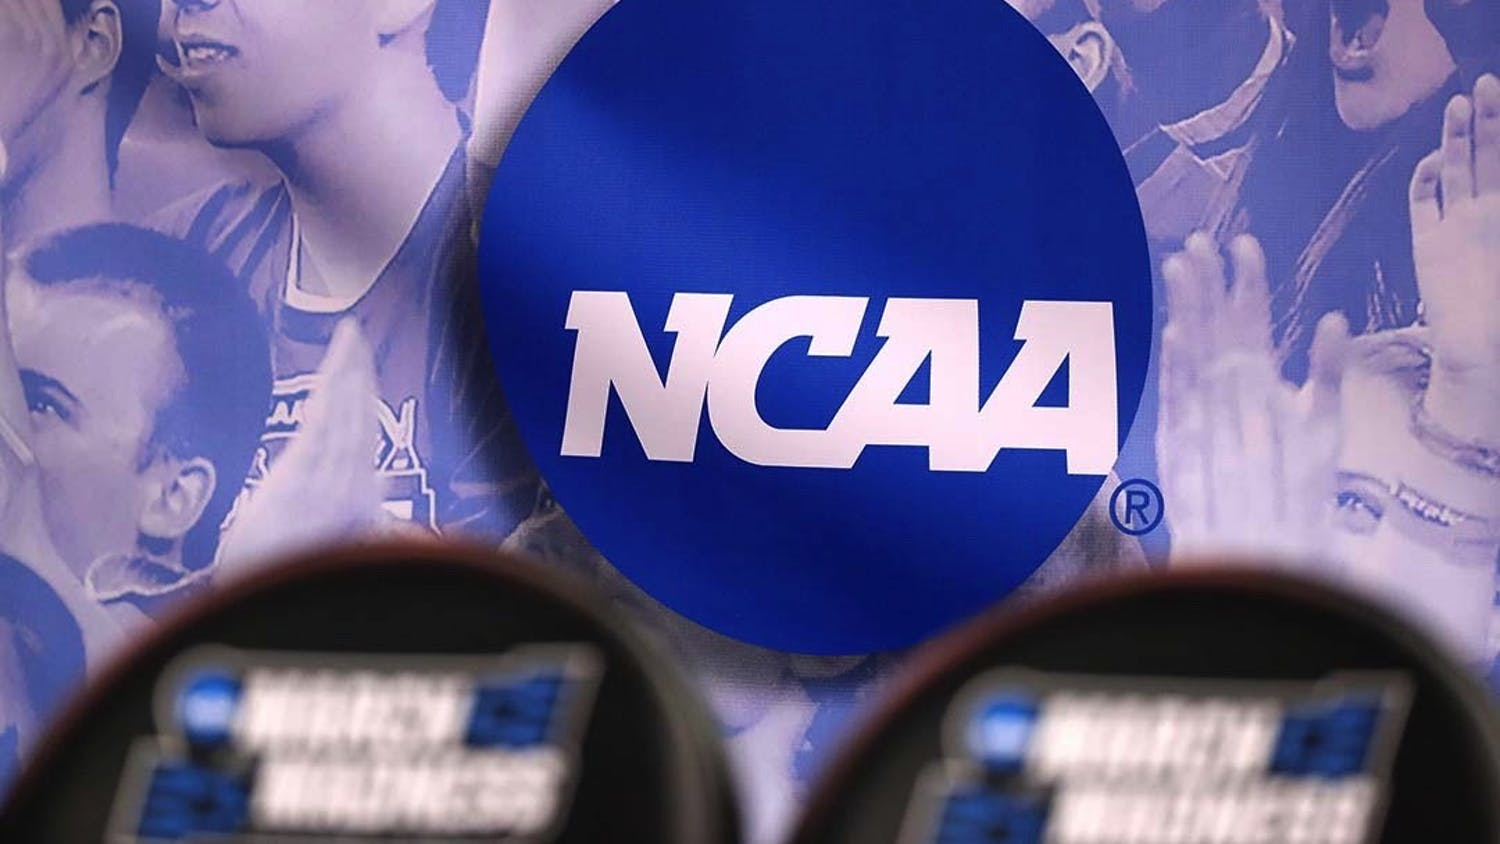 The NCAA logo during the NCAA Men's Basketball Tournament in 2017. The NCAA is changing its rules to allow players within the organization to earn money from their name, image and likeness (NIL).